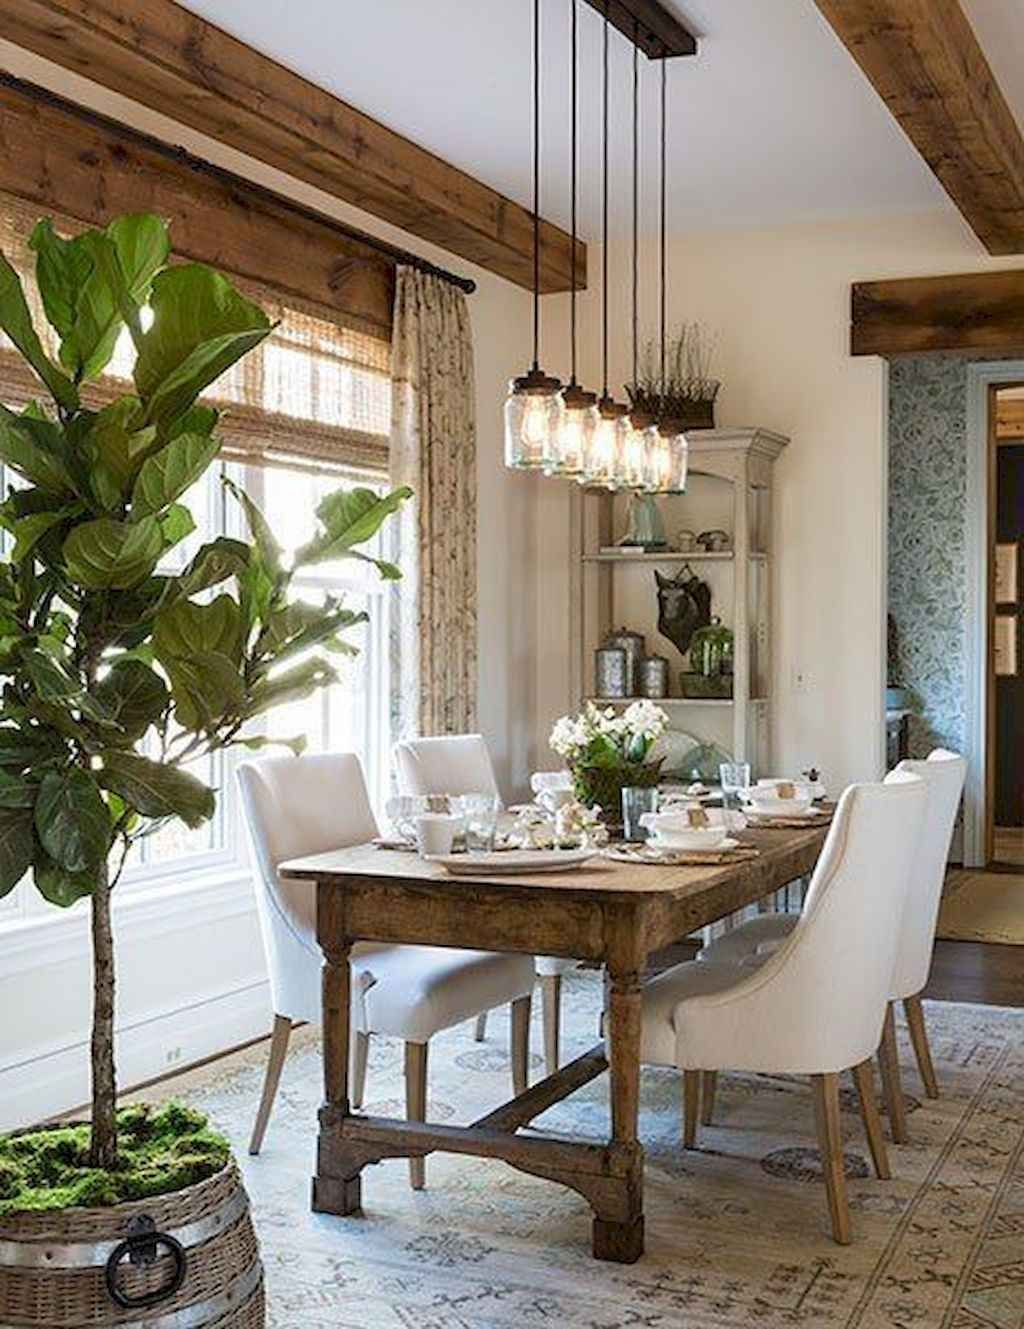 50 Rustic Farmhouse Dining Room Table Design Ideas